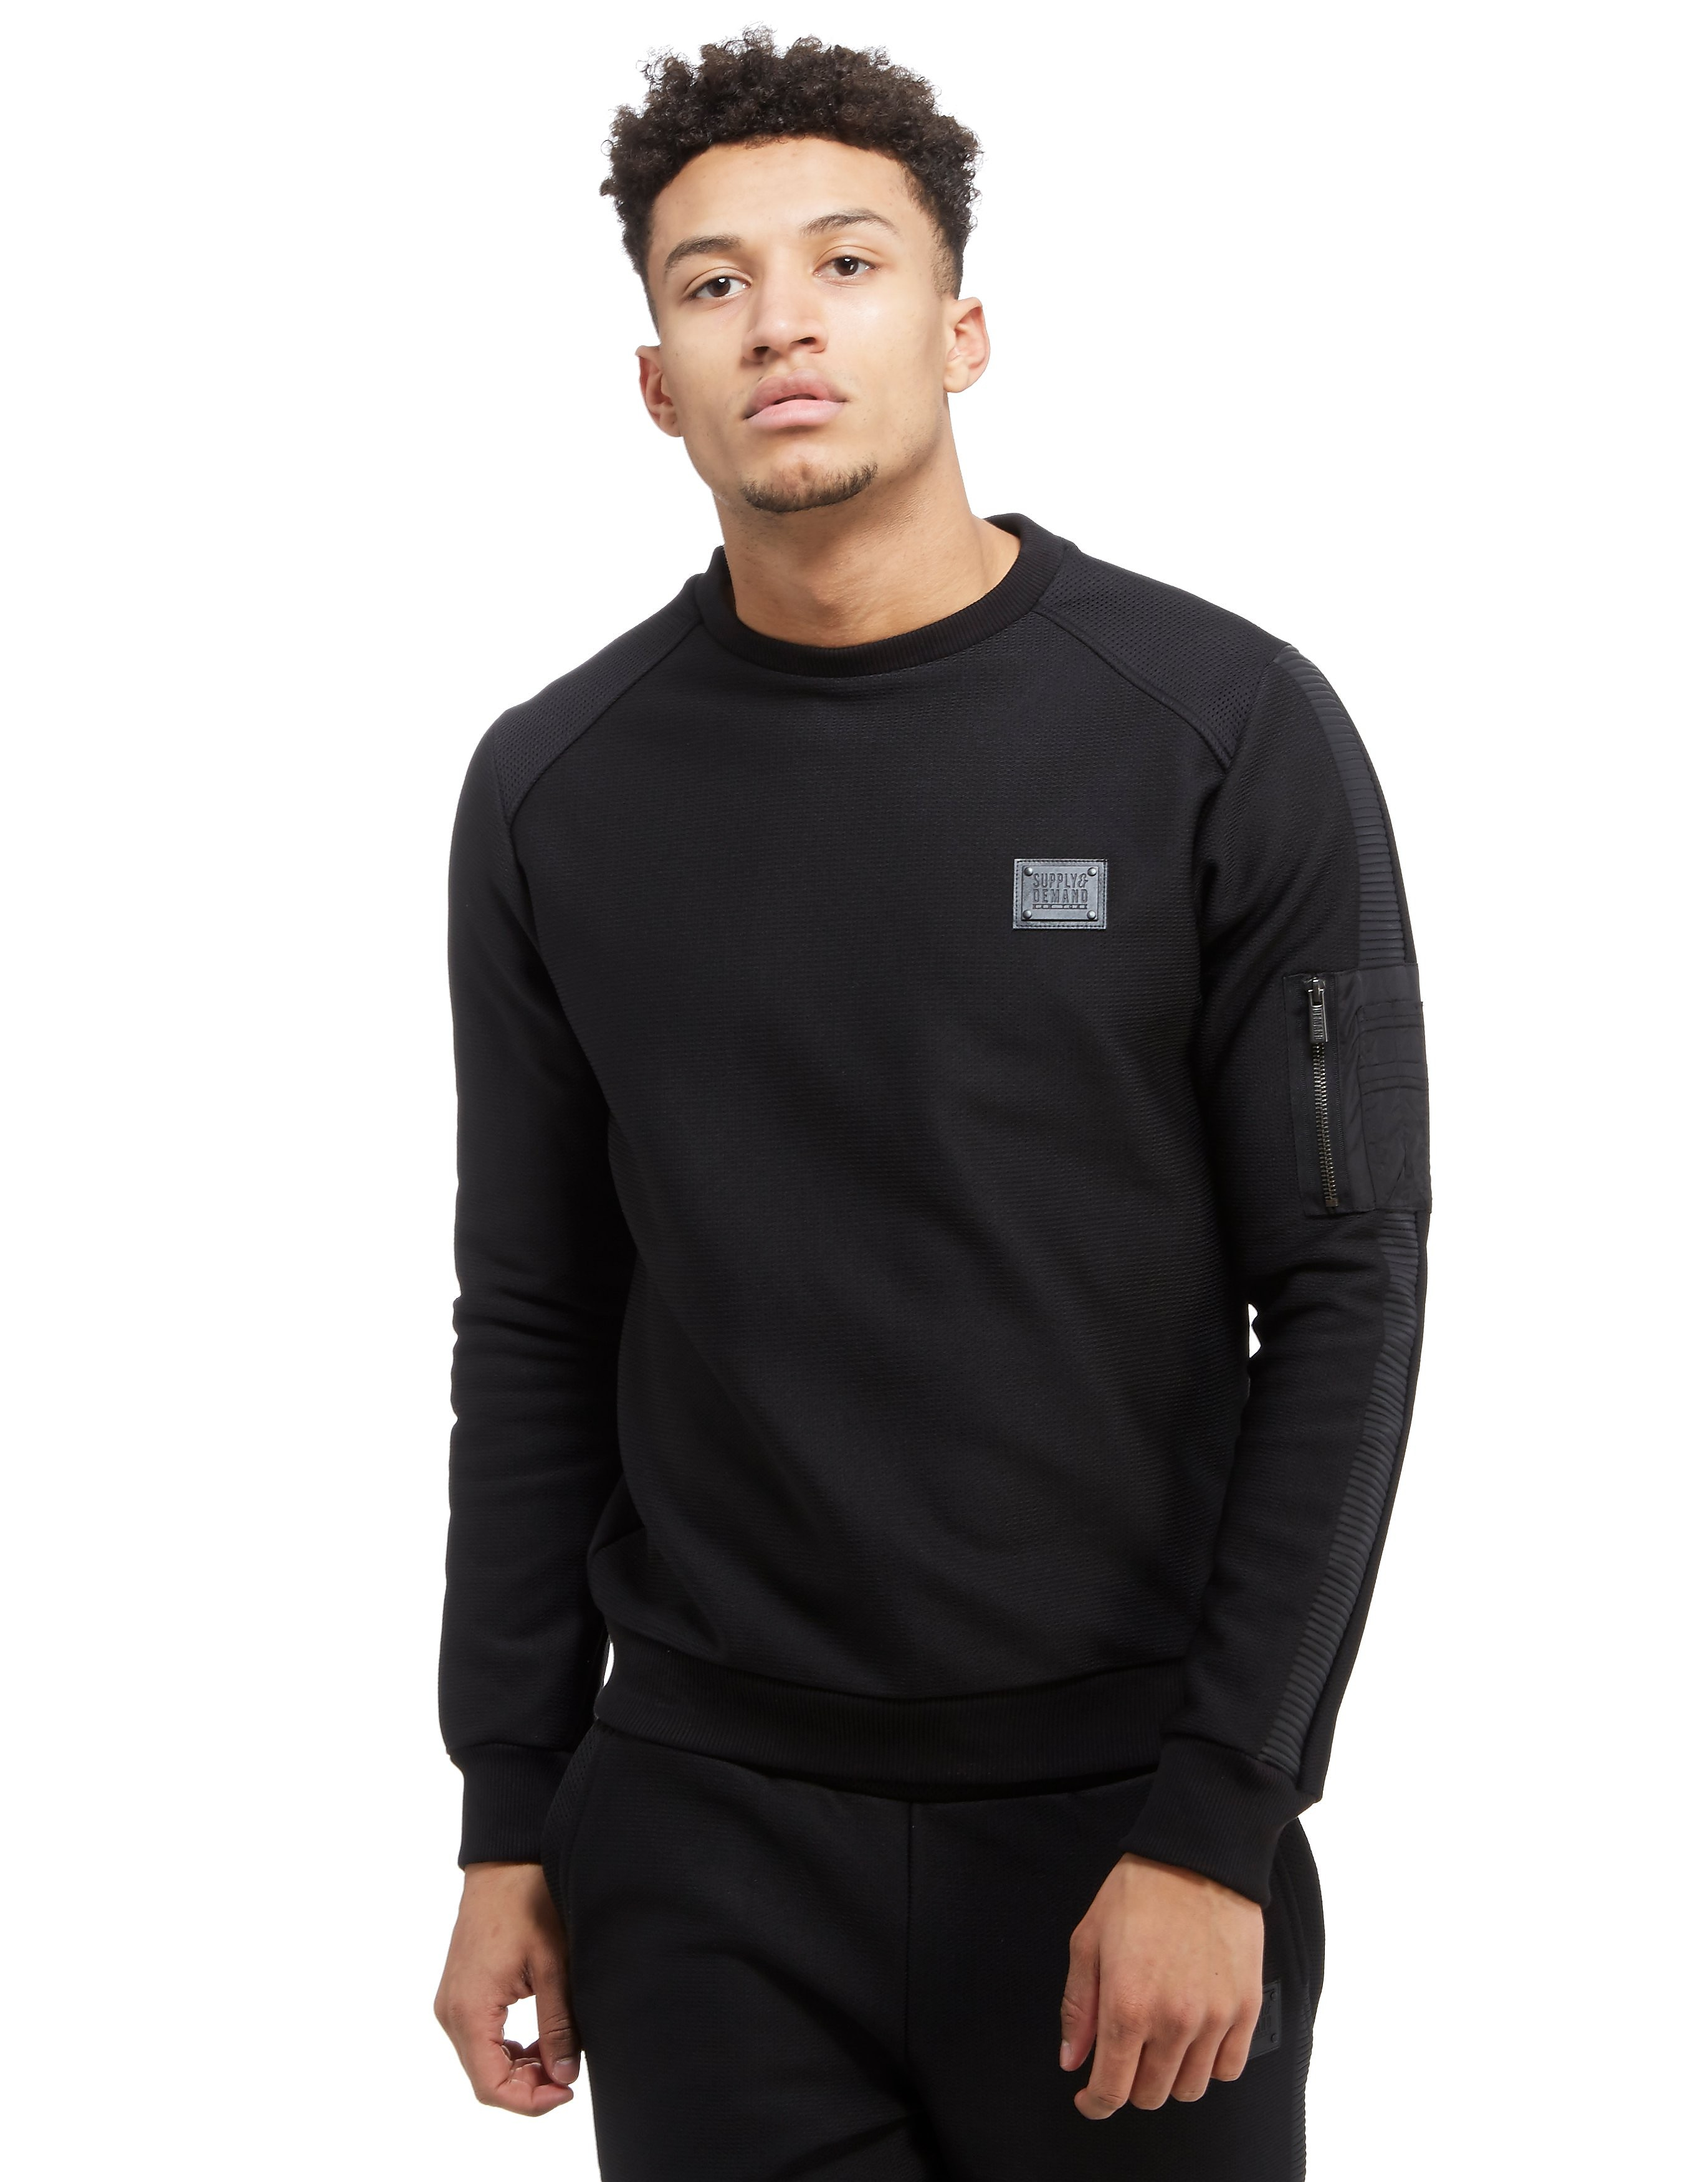 Supply & Demand Ringer Crew Sweatshirt